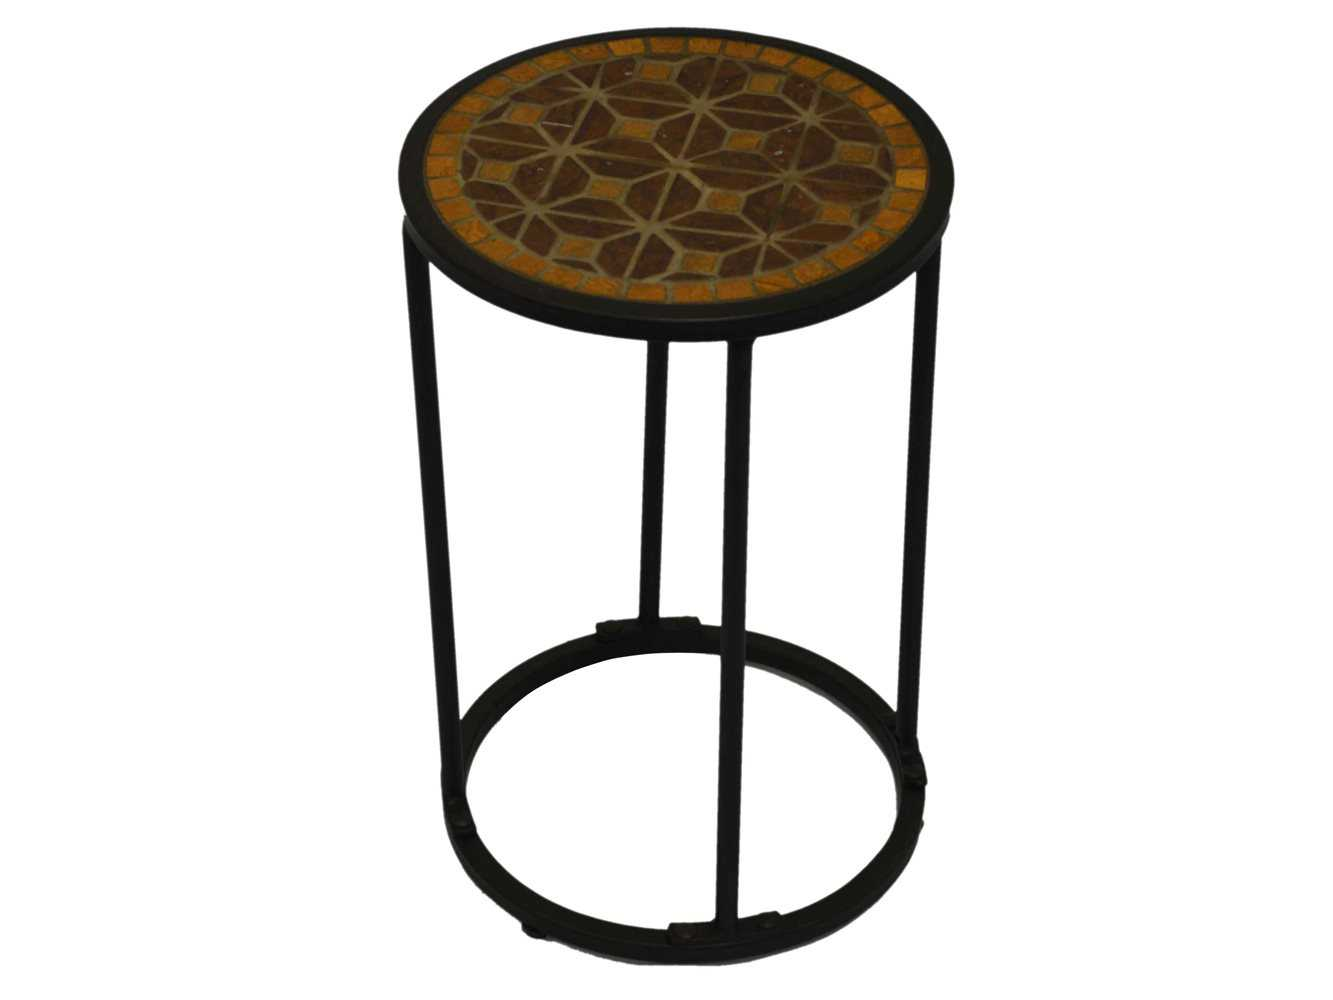 paragon casual odell wrought iron round lantana accent large black table ginger jar lamps balcony furniture set and chairs square acrylic pottery barn side cast garden ikea file